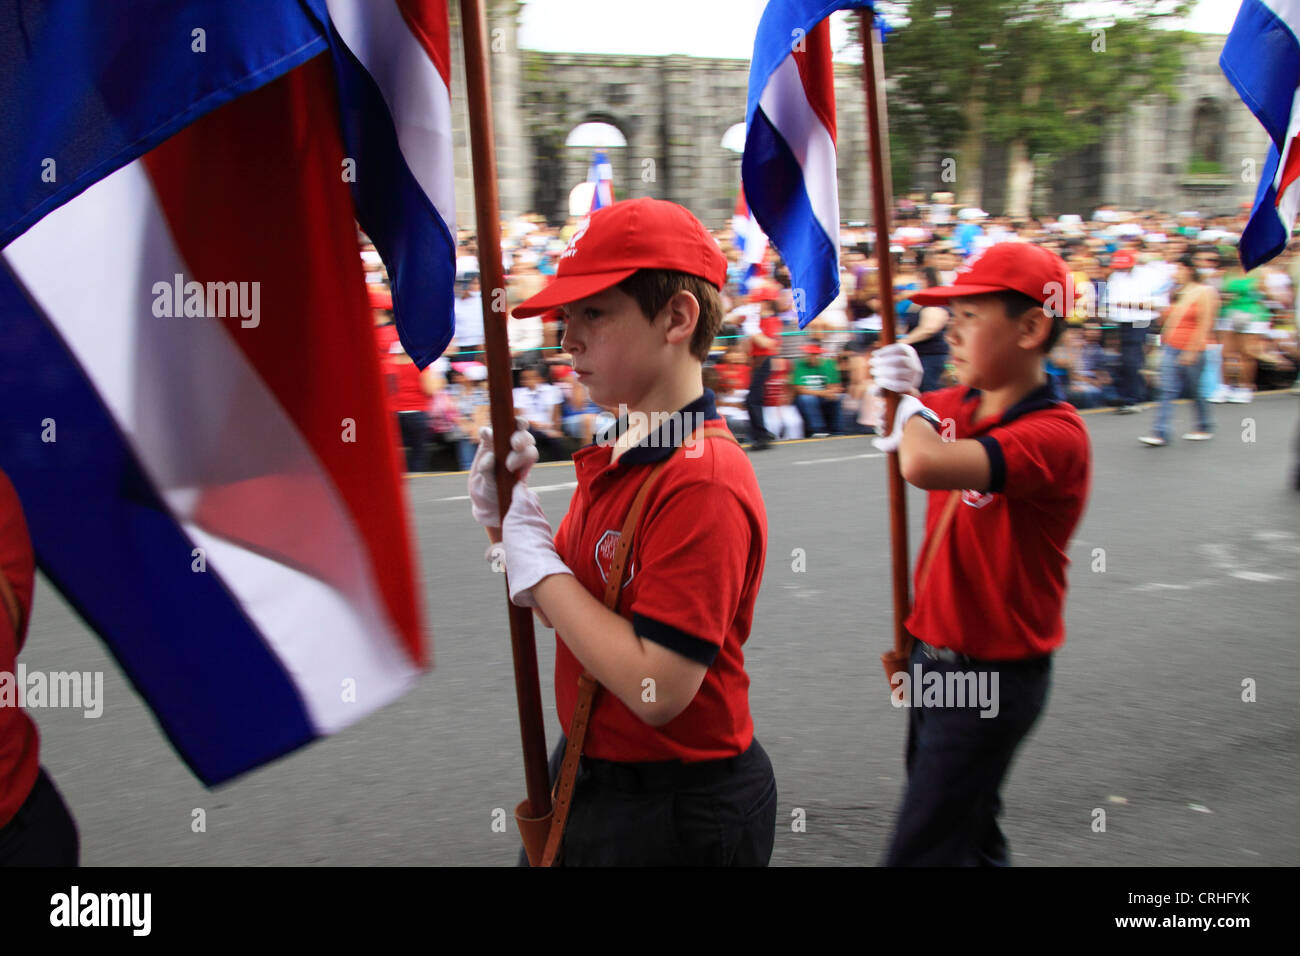 Independence Day Parade on 15th September, Cartago, Costa Rica. - Stock Image